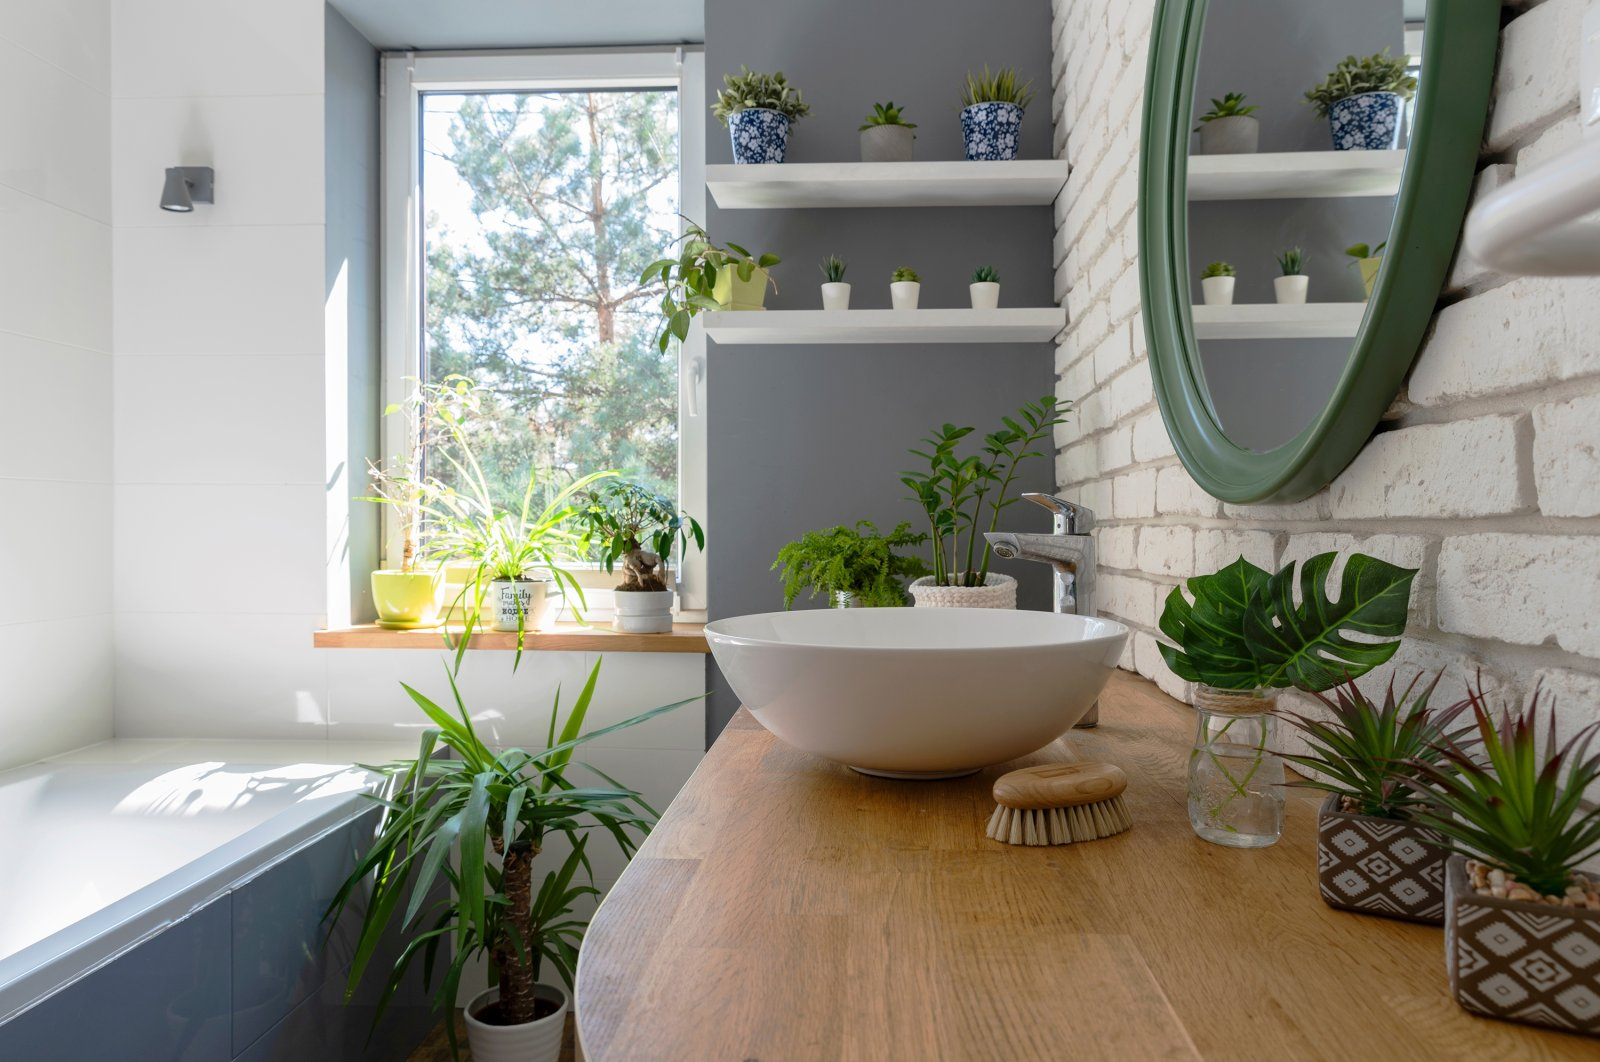 By choosing the correct plants, you can turn your bathroom into your own luscious jungle. (Shutterstock Photo)